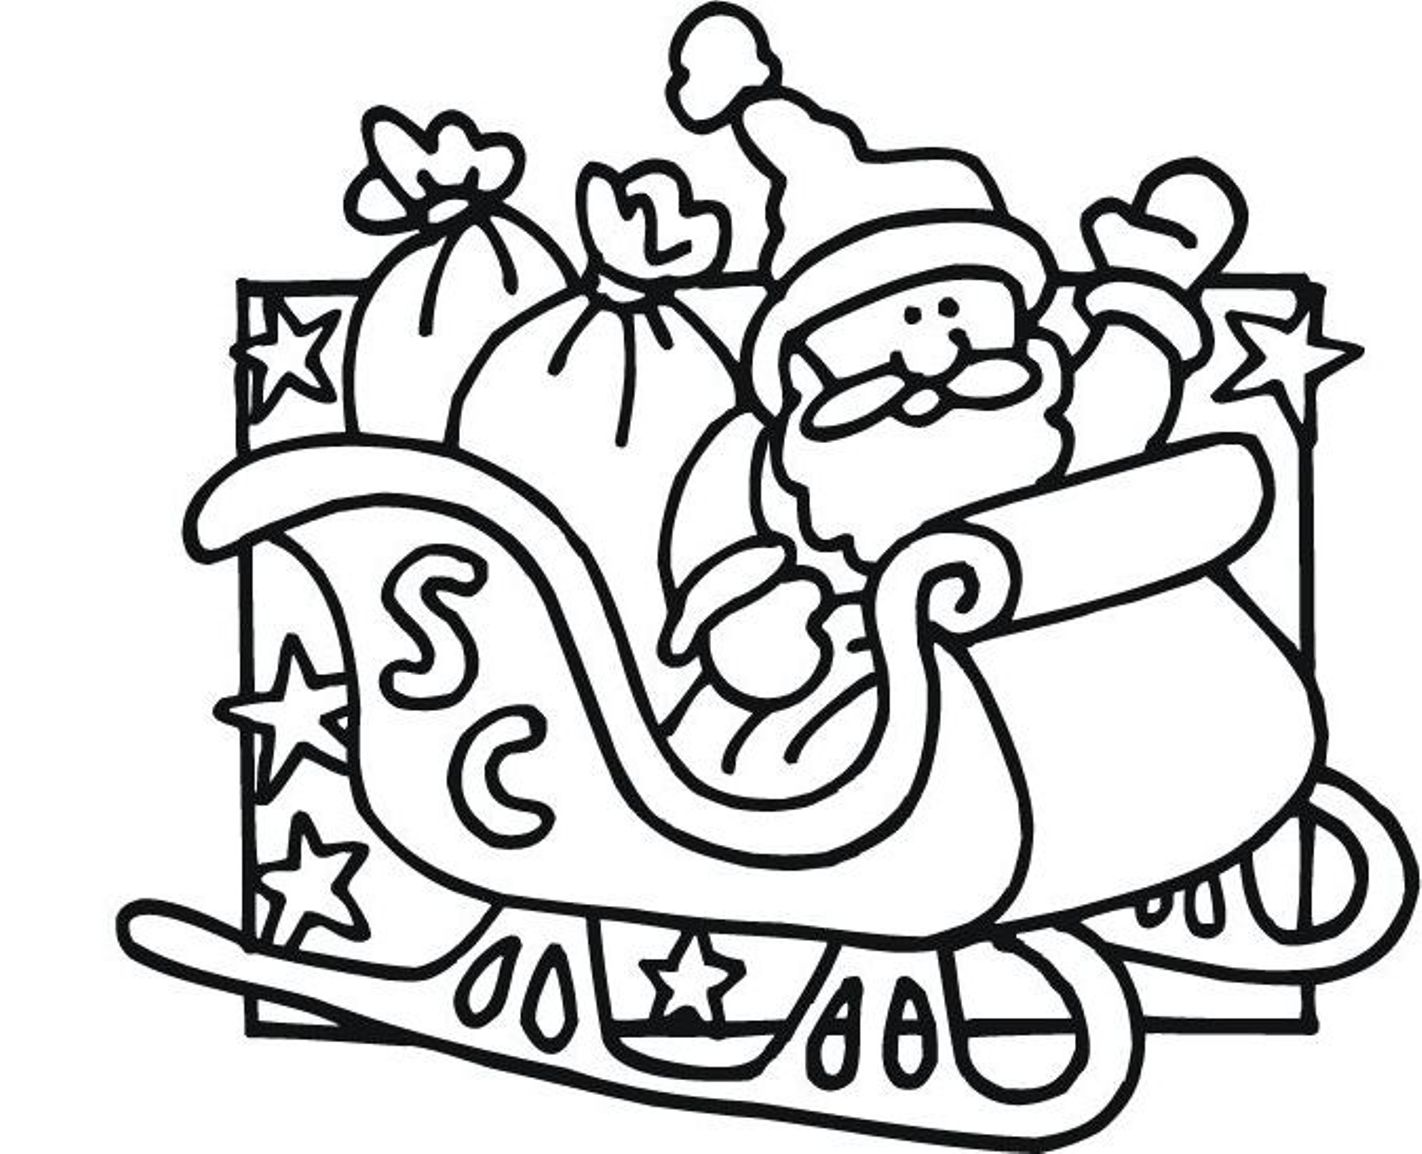 Santa Sleigh And Reindeer Coloring Pages For Kids